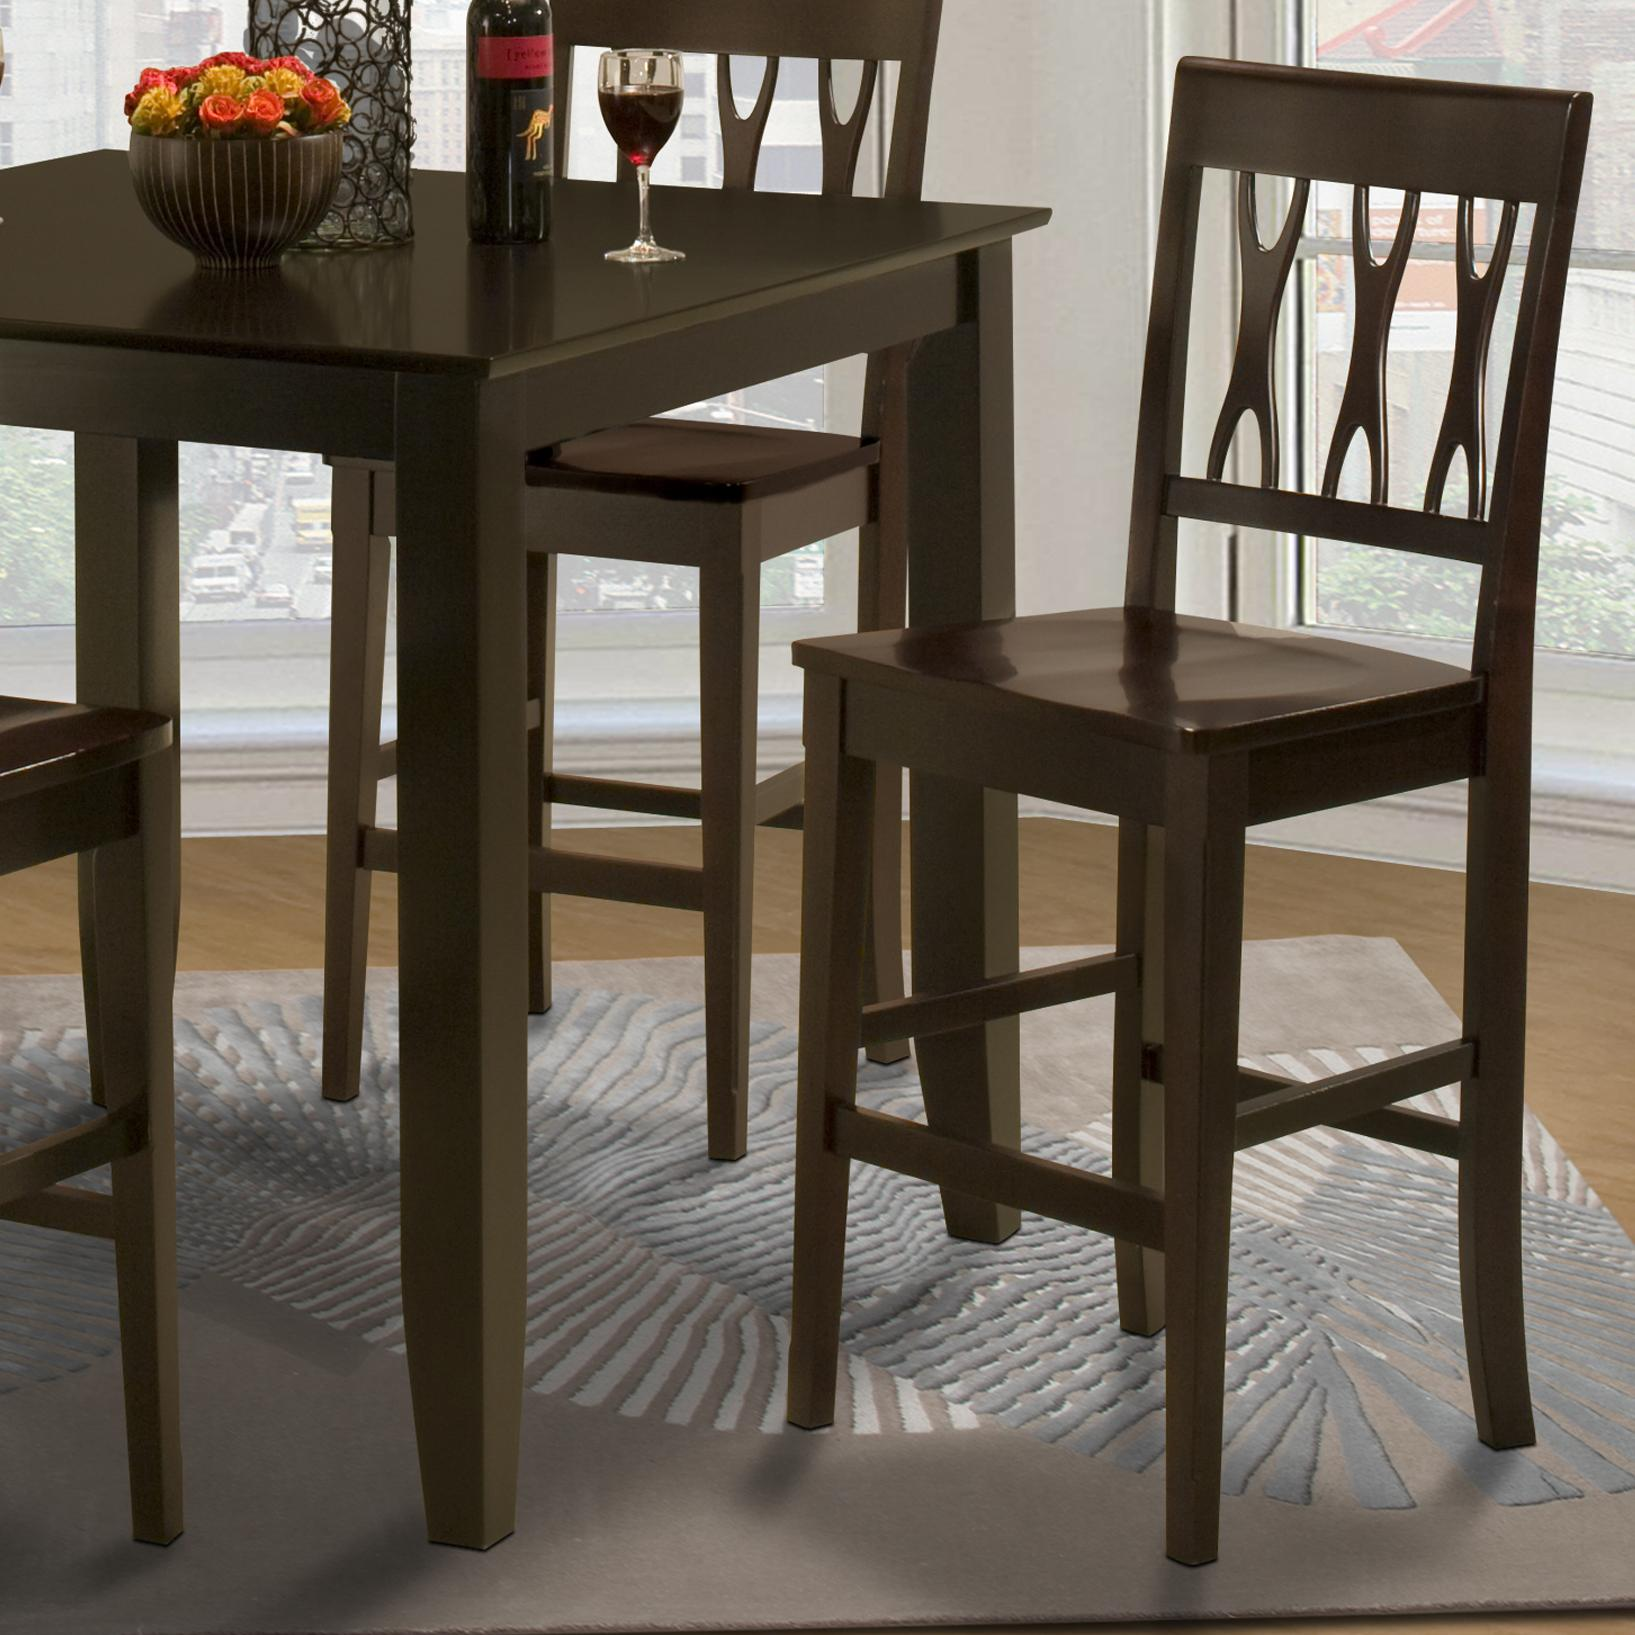 new classic style 19 04 0605 020 abbie all wood counter height chair del sol furniture bar. Black Bedroom Furniture Sets. Home Design Ideas